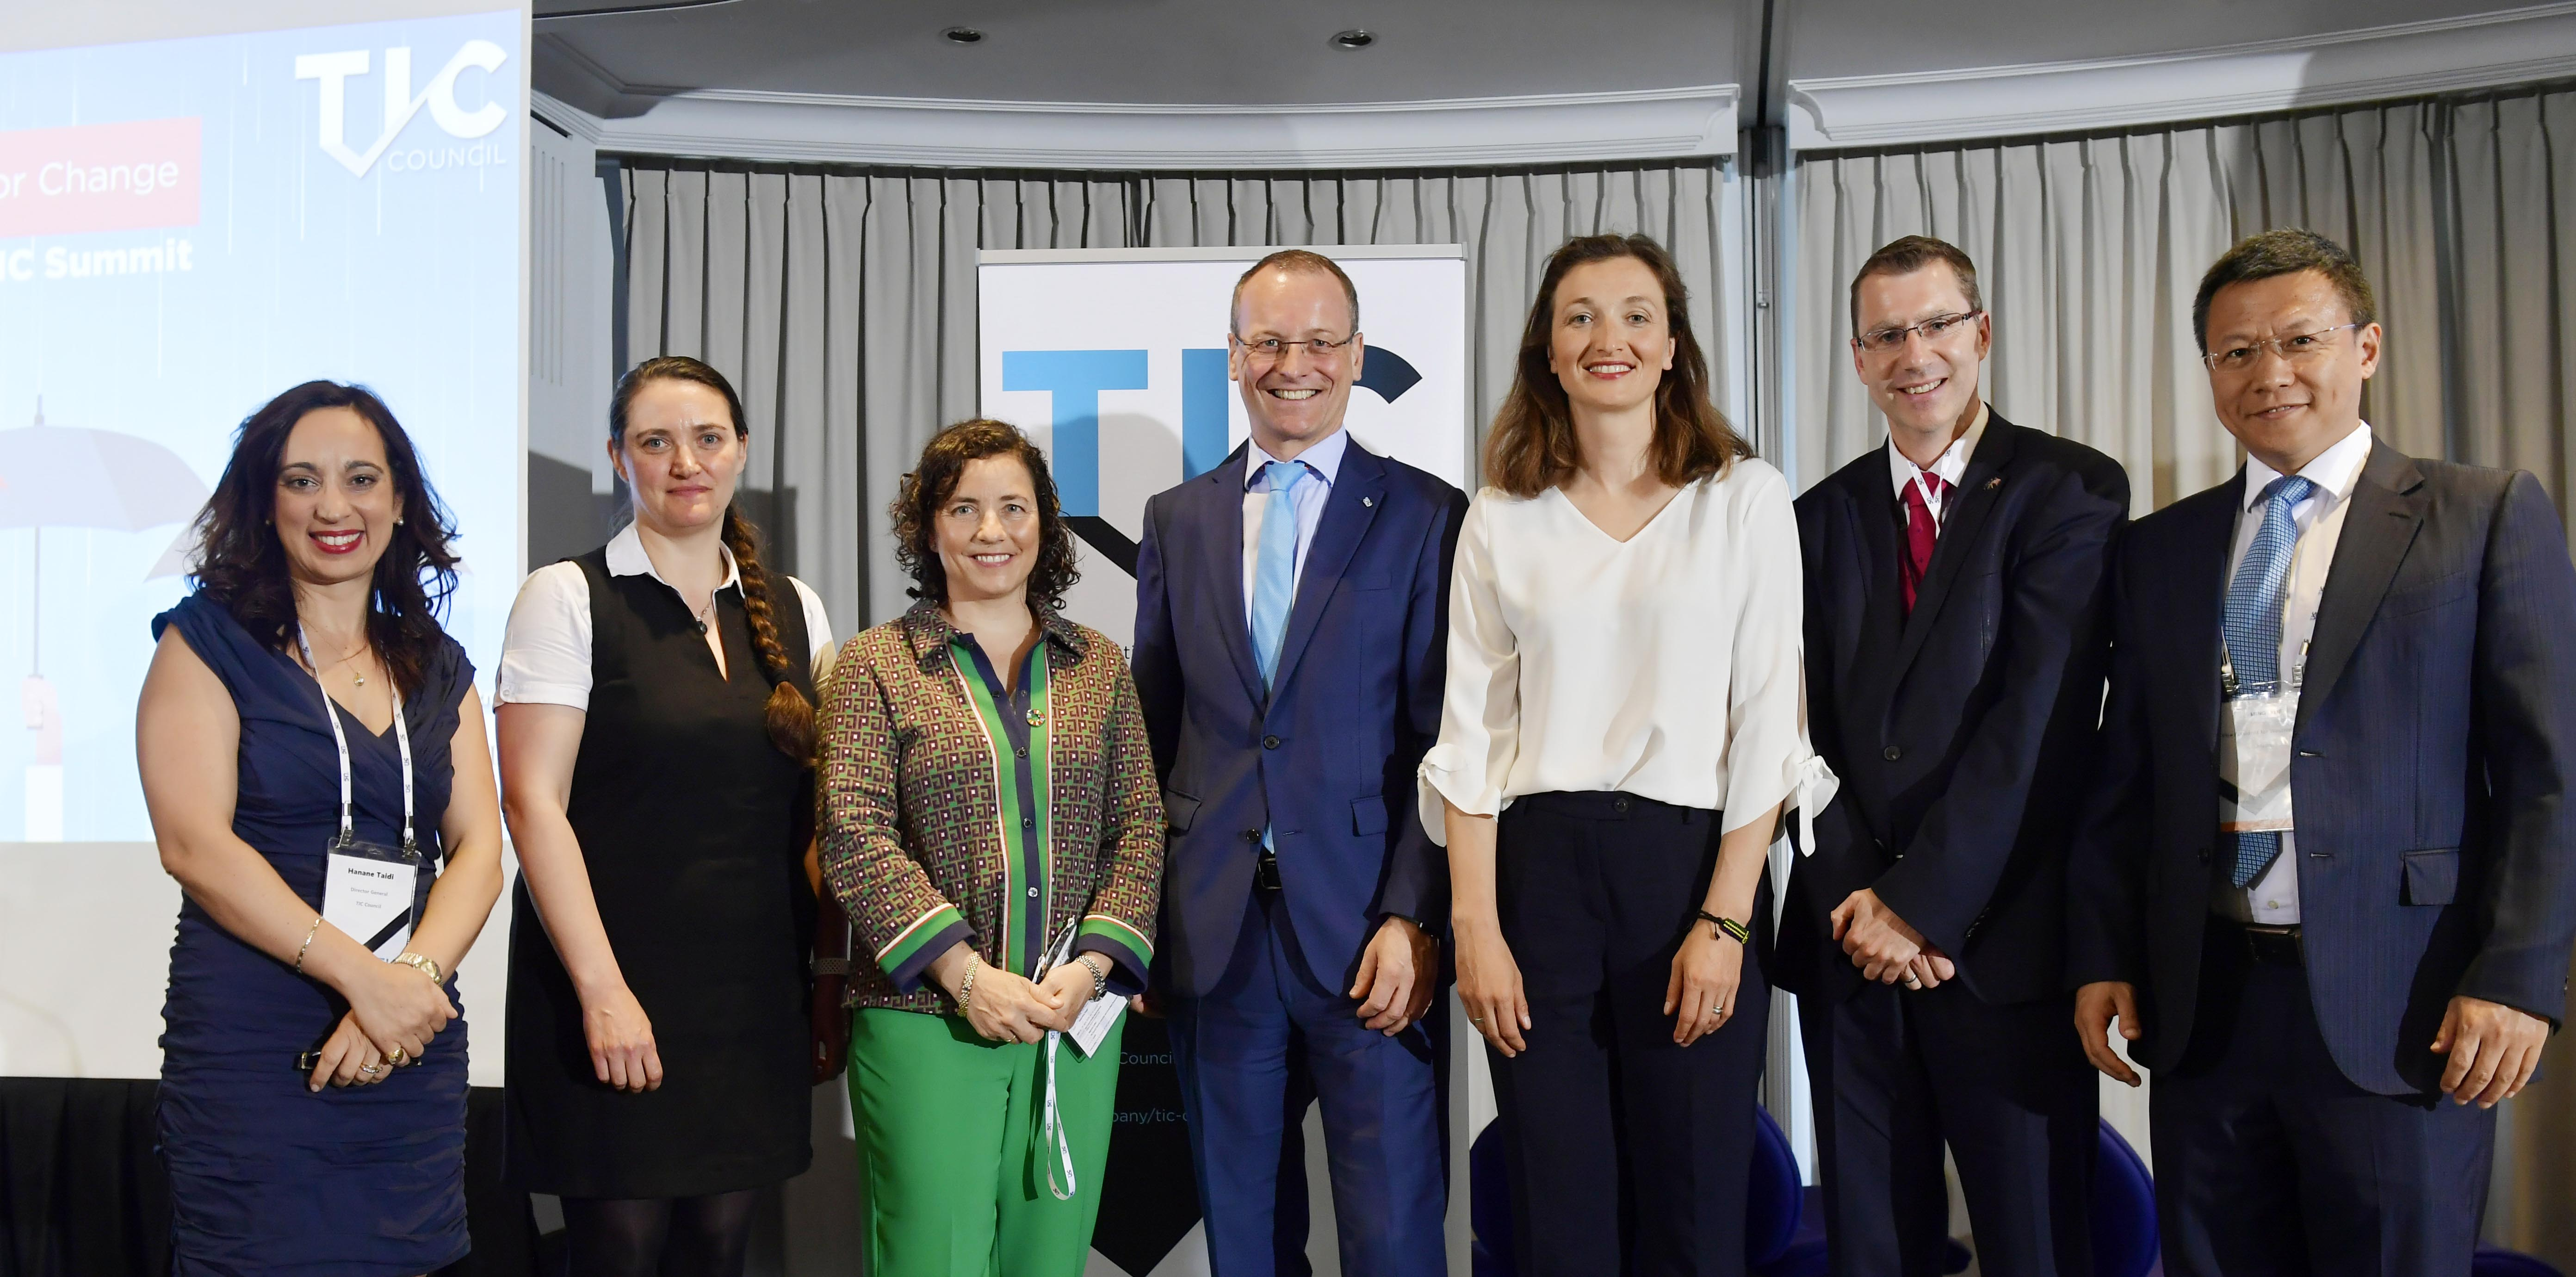 TIC Council Climate Impact 18 June 2019, Brussels.jpg